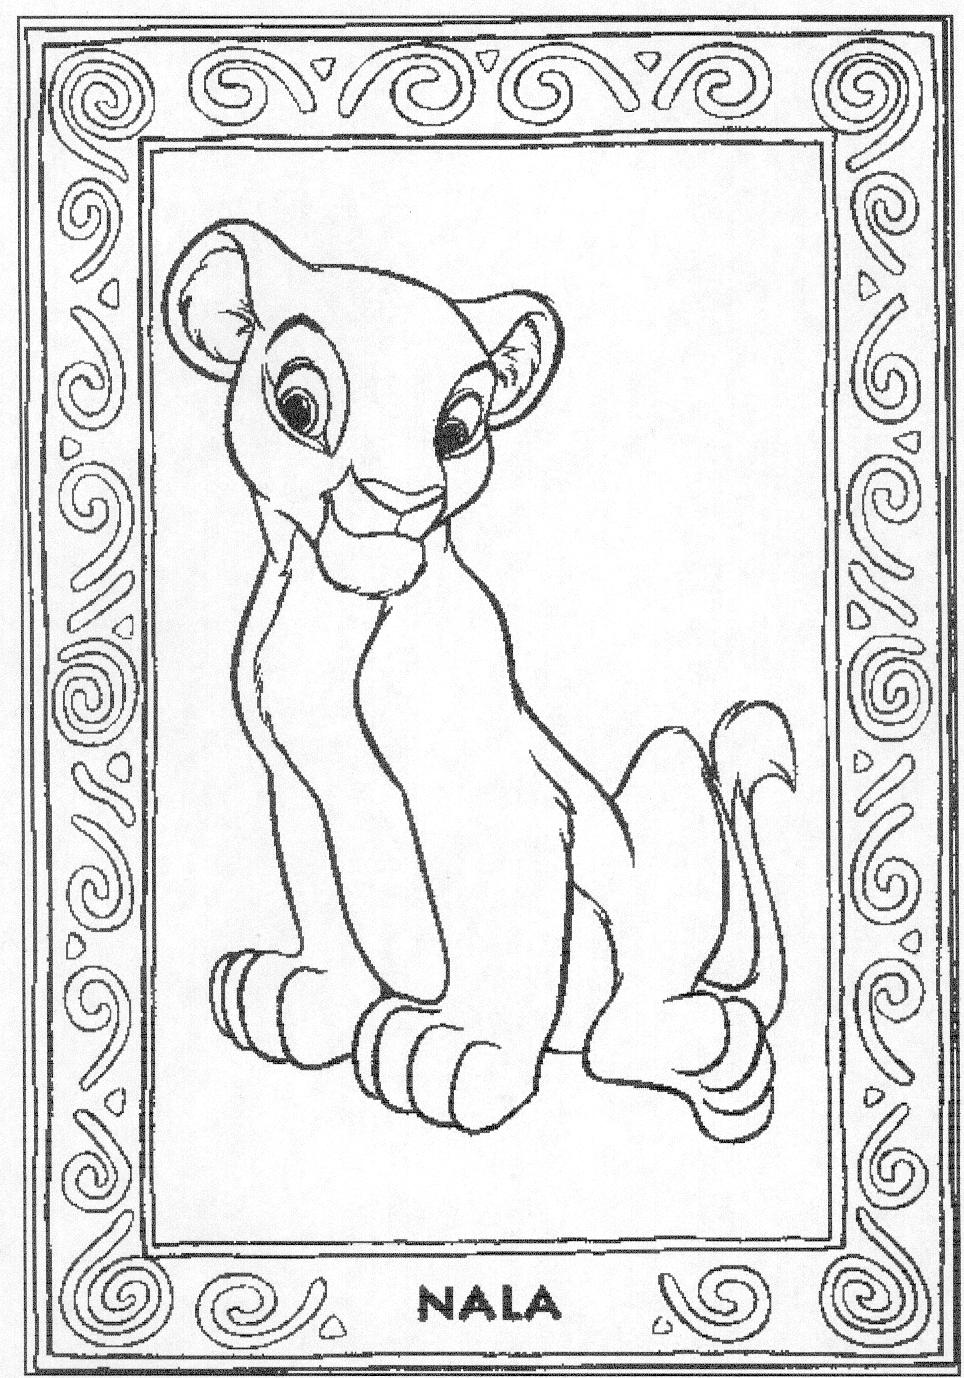 coloring the lion king best hd lion king coloring pages pictures big collection lion king coloring the